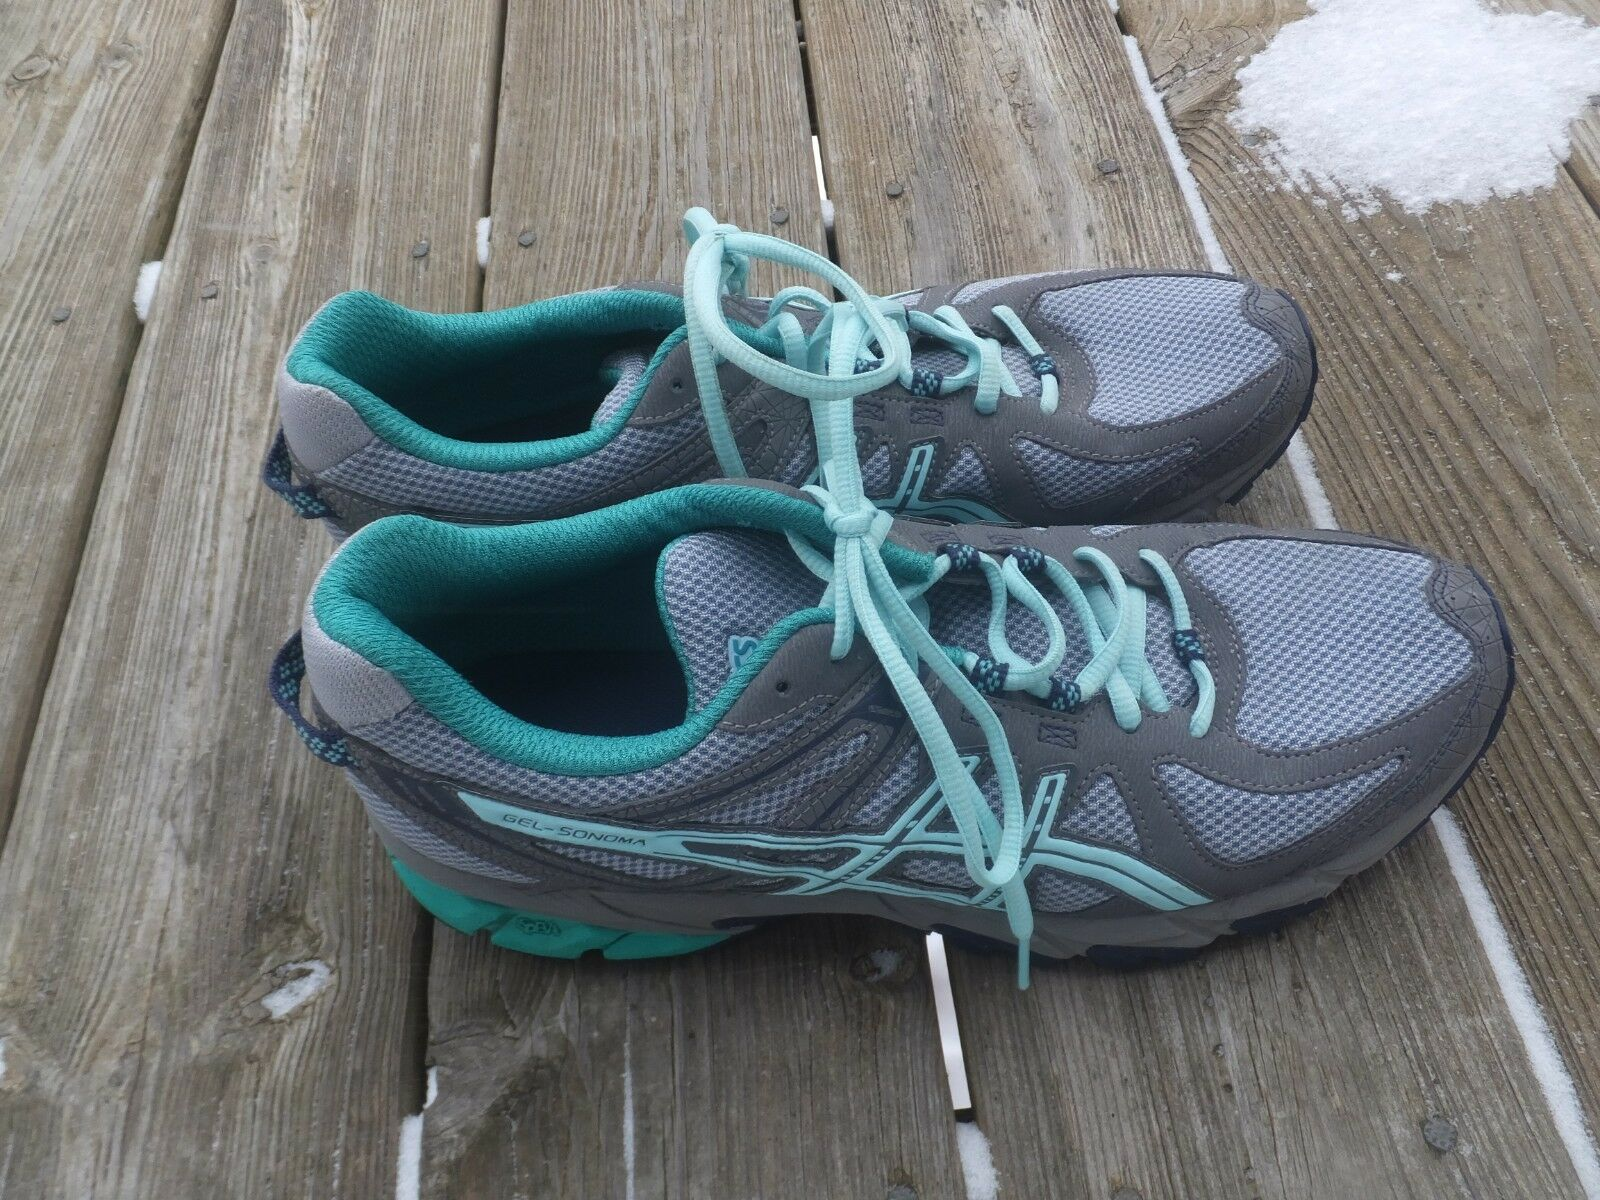 Asics Men's Gel-Sonoma 3 Trail Running shoes Size 12, Mint Condition